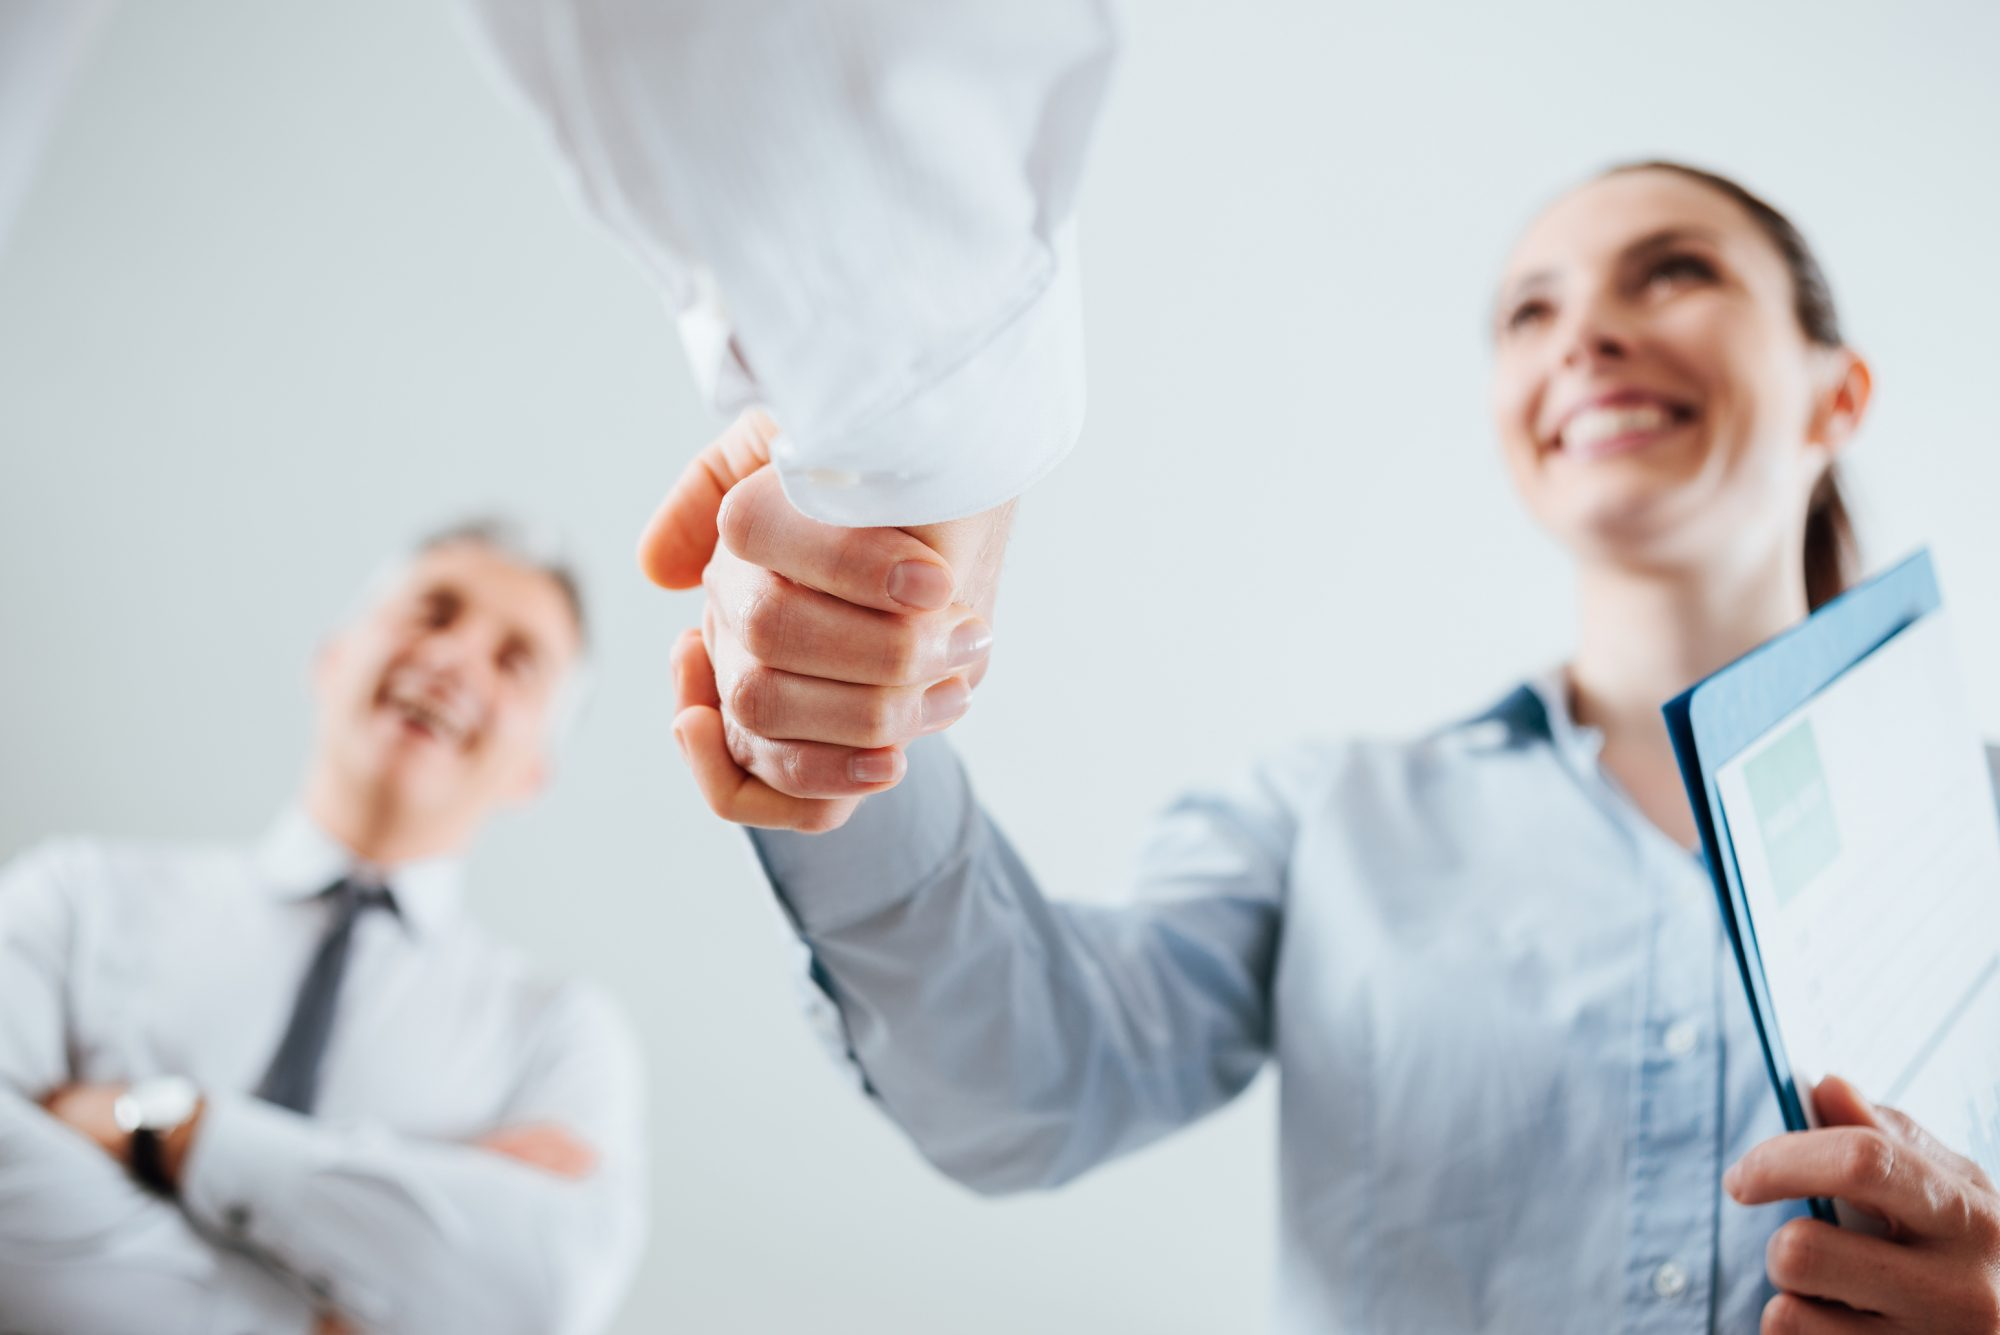 4 Things You Should Consider When Selecting Team Members